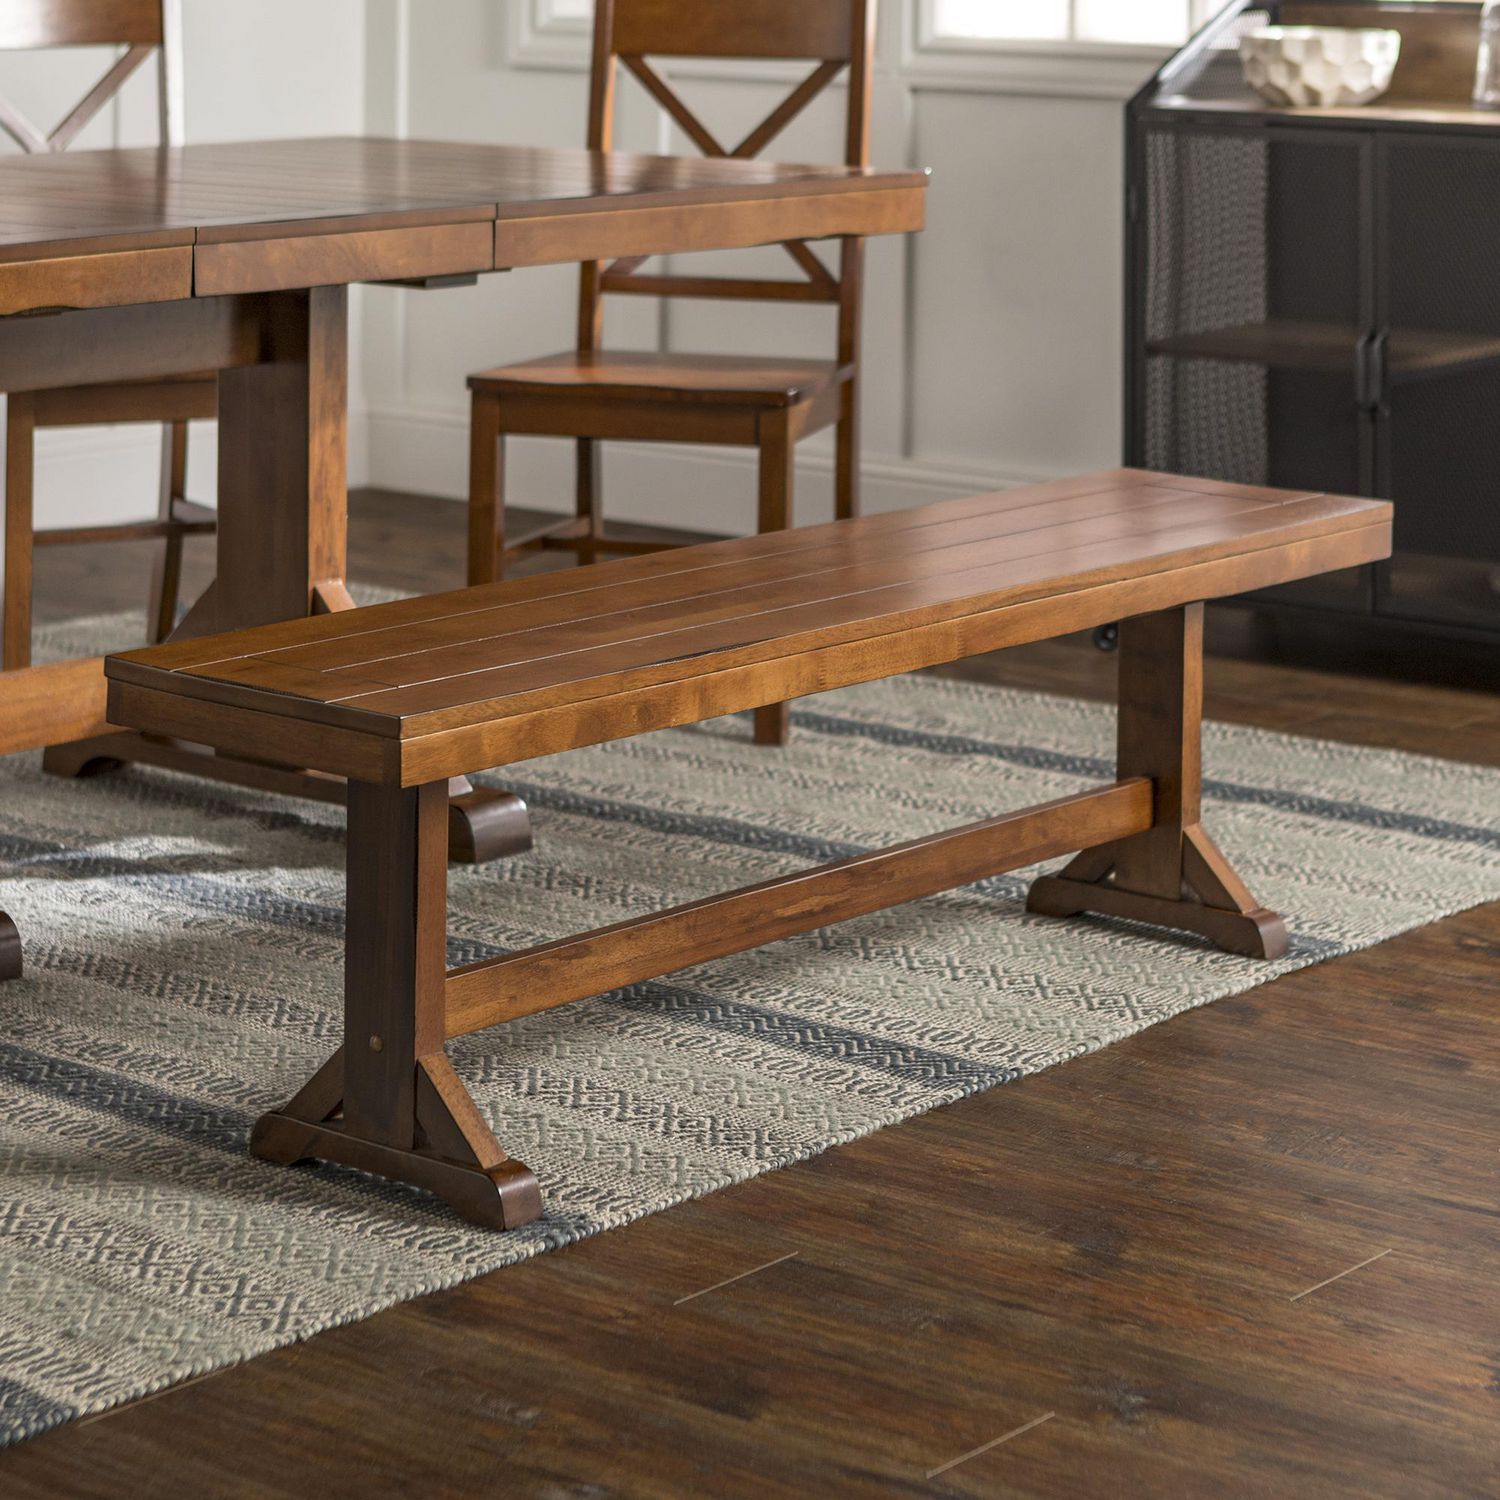 Manor Park 9 Person Wood Dining Bench - Multiple Finishes